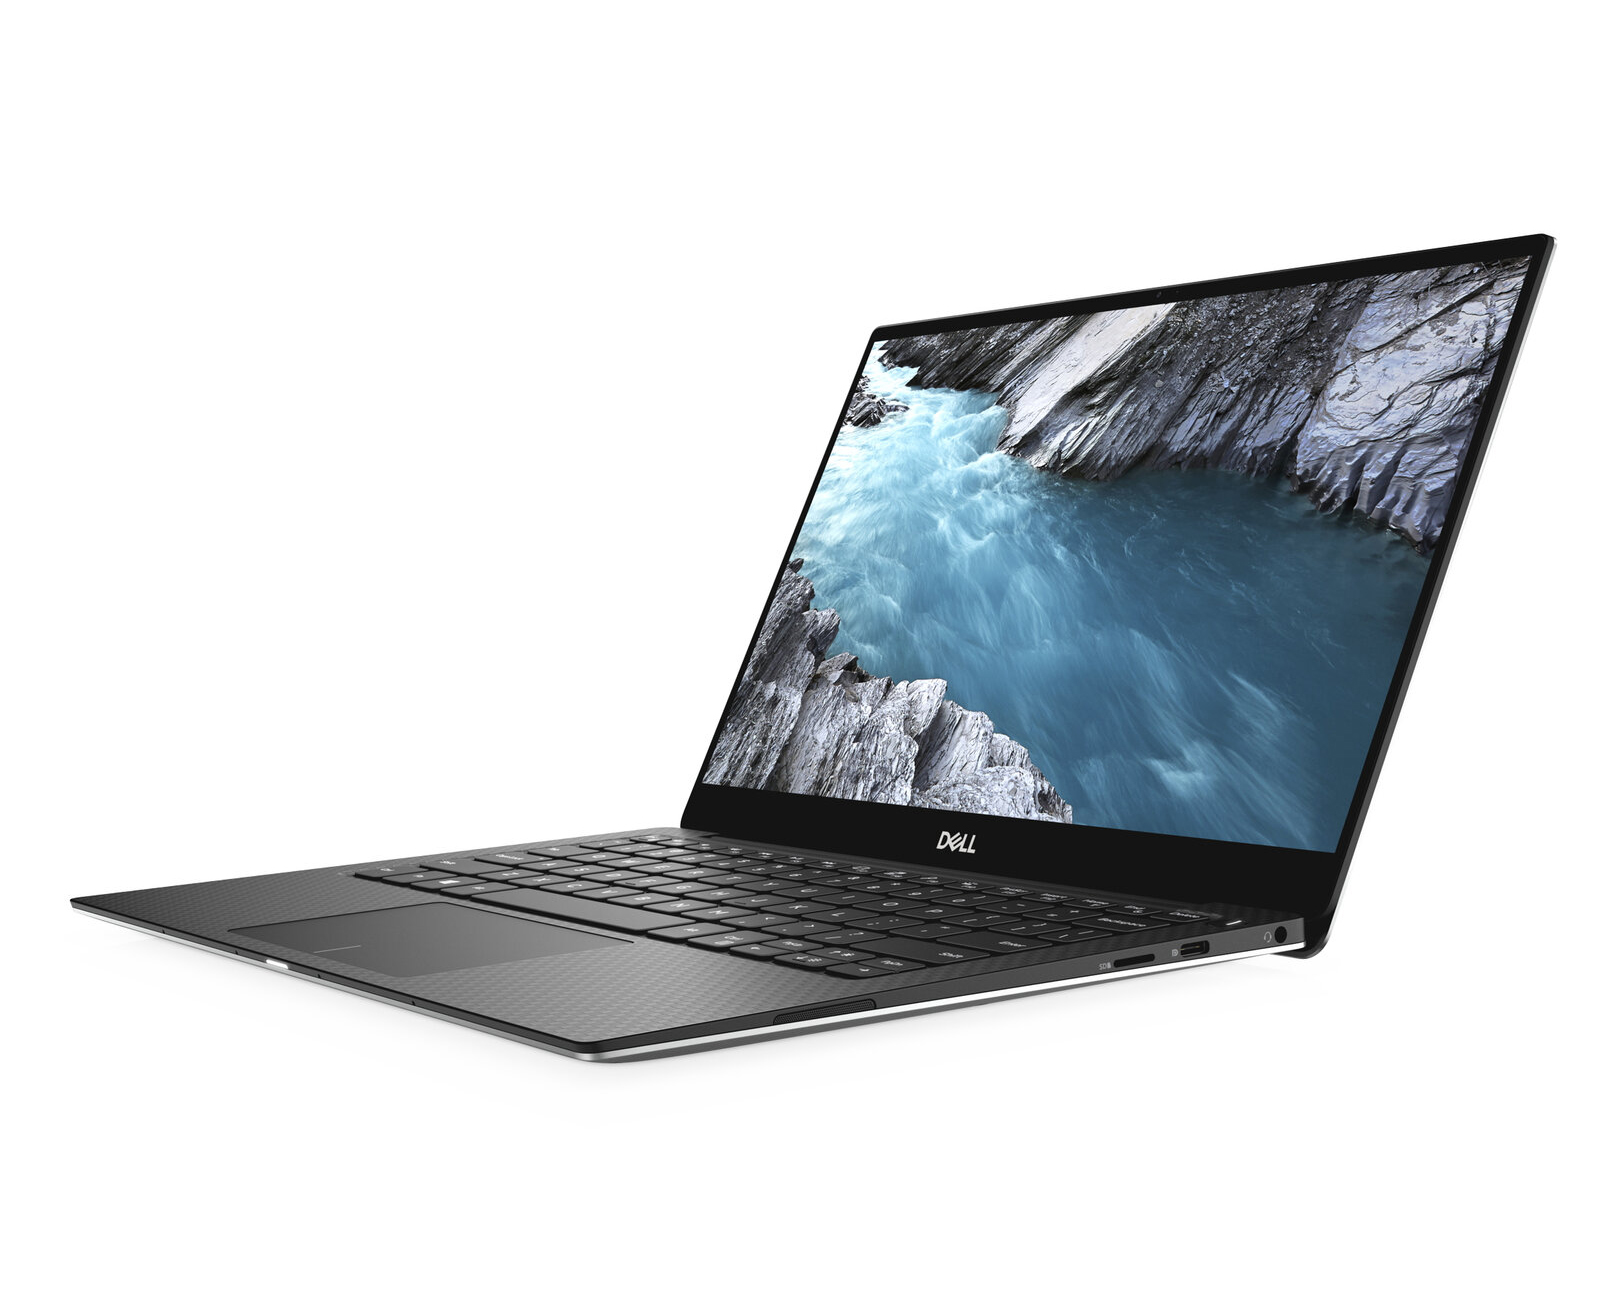 Dell XPS 13 9380 2019 (i5-8265U, 256GB, UHD) Subnotebook Review - NotebookCheck.net Reviews